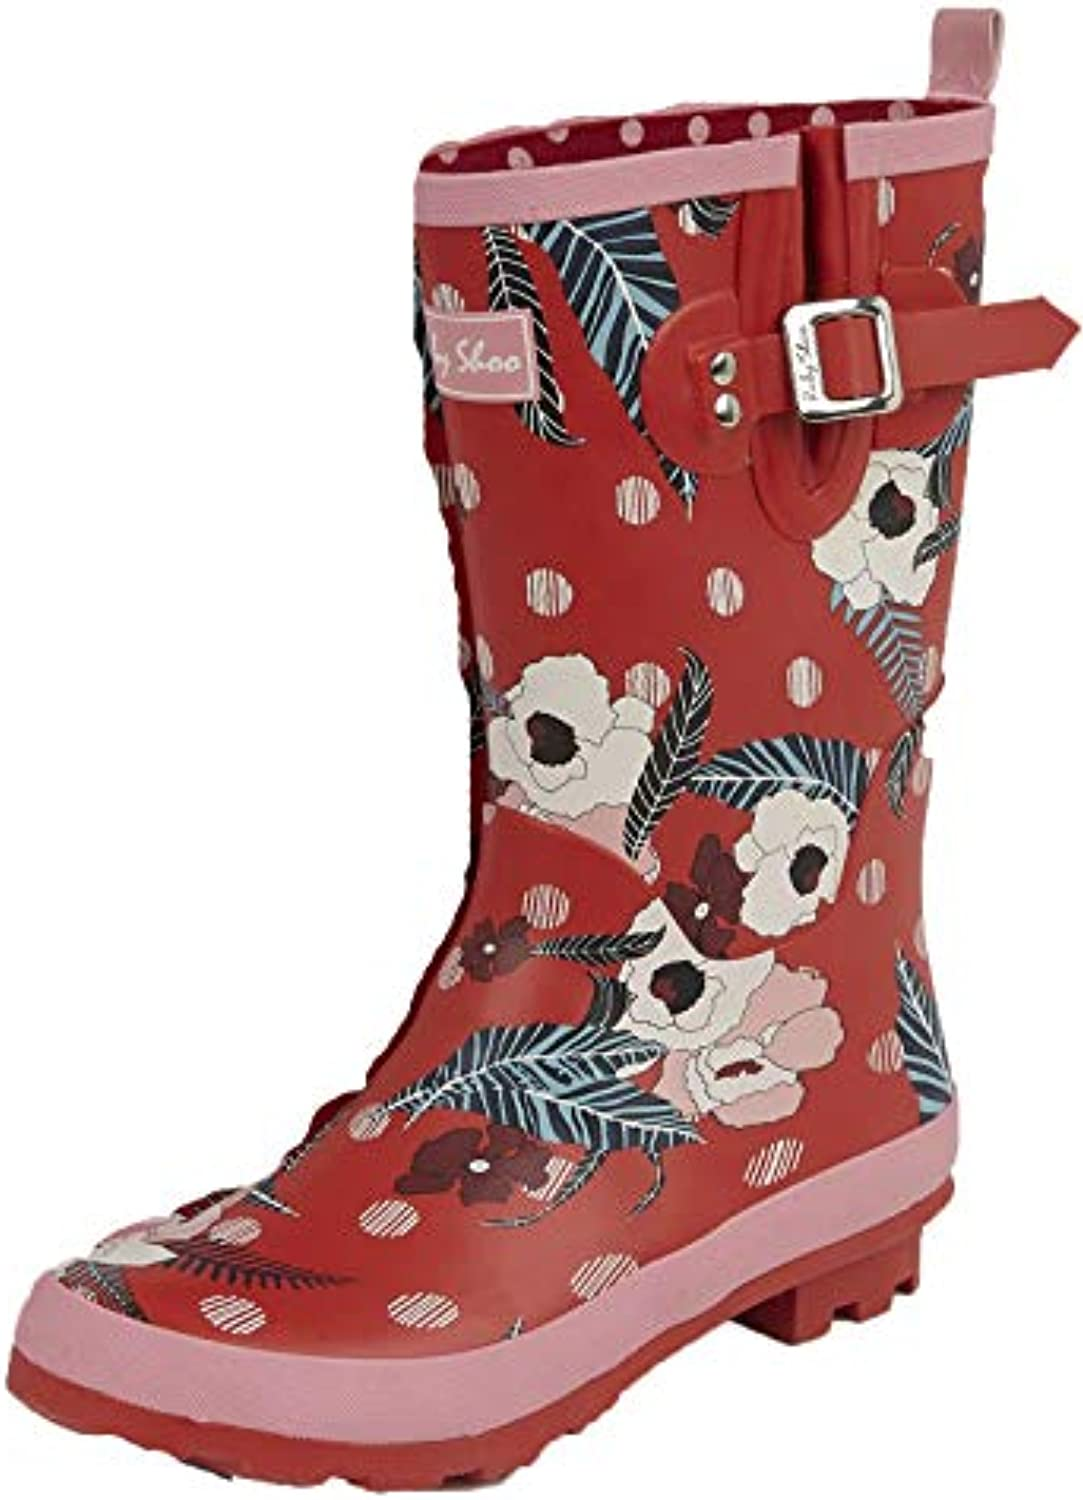 Ruby Shoo Ladies Hermione rosso rosso rosso rosa Floral Short Leg Wellies stivali 09296-UK 8 (EU 41) | flagship store